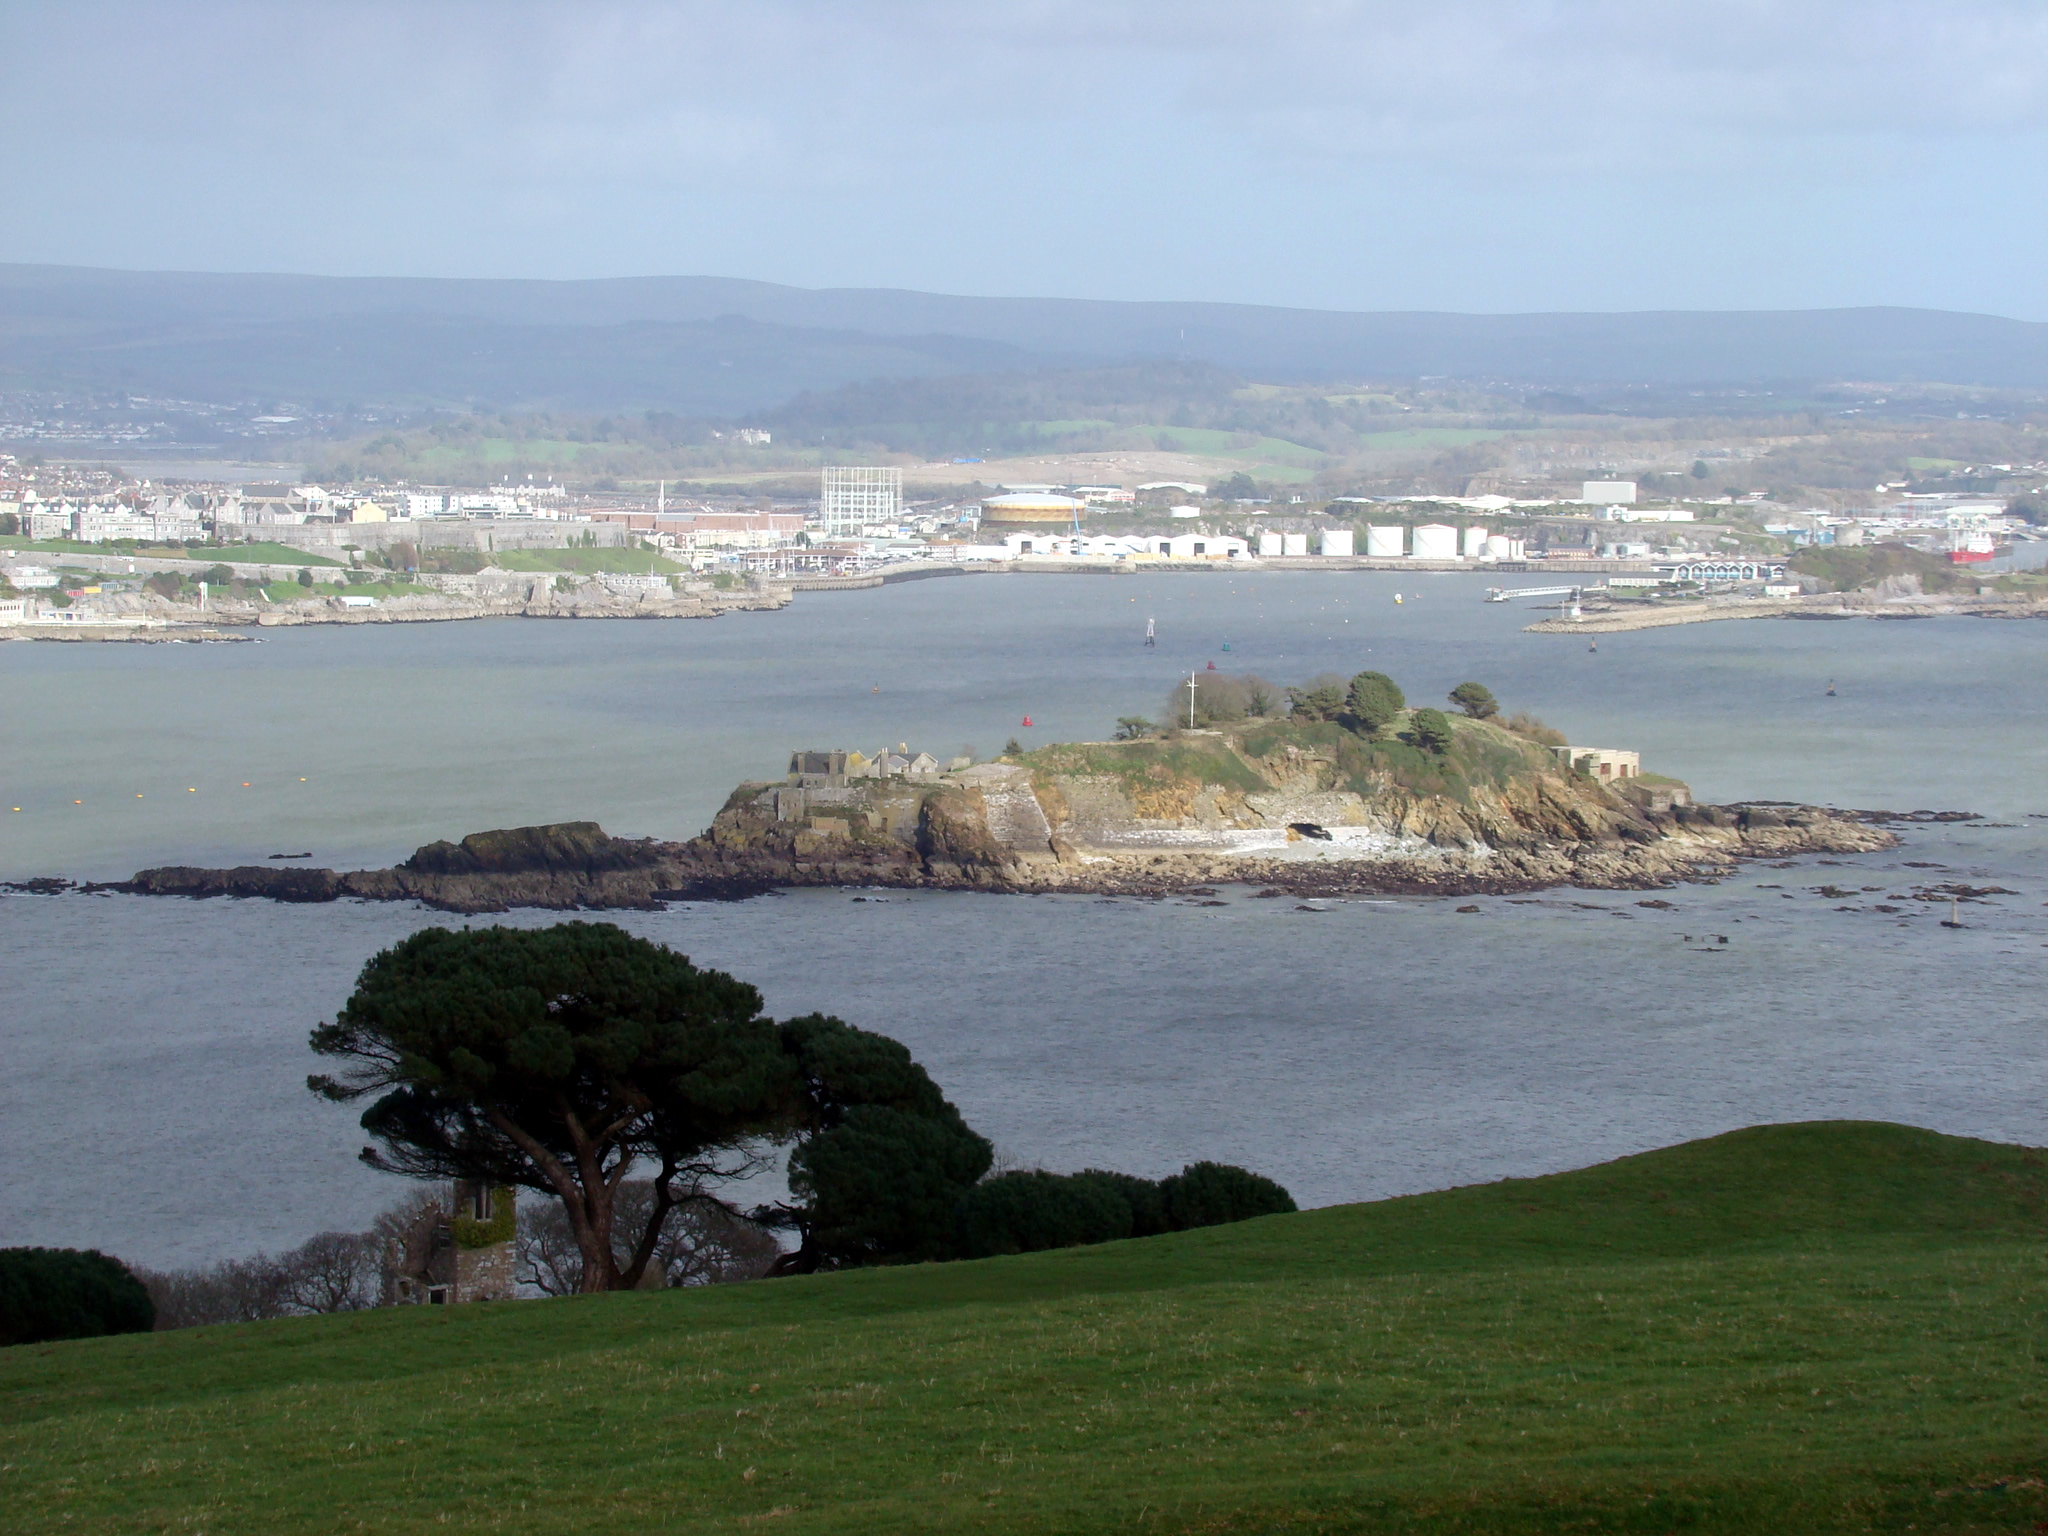 An image of Drake's Island in Plymouth Sound.